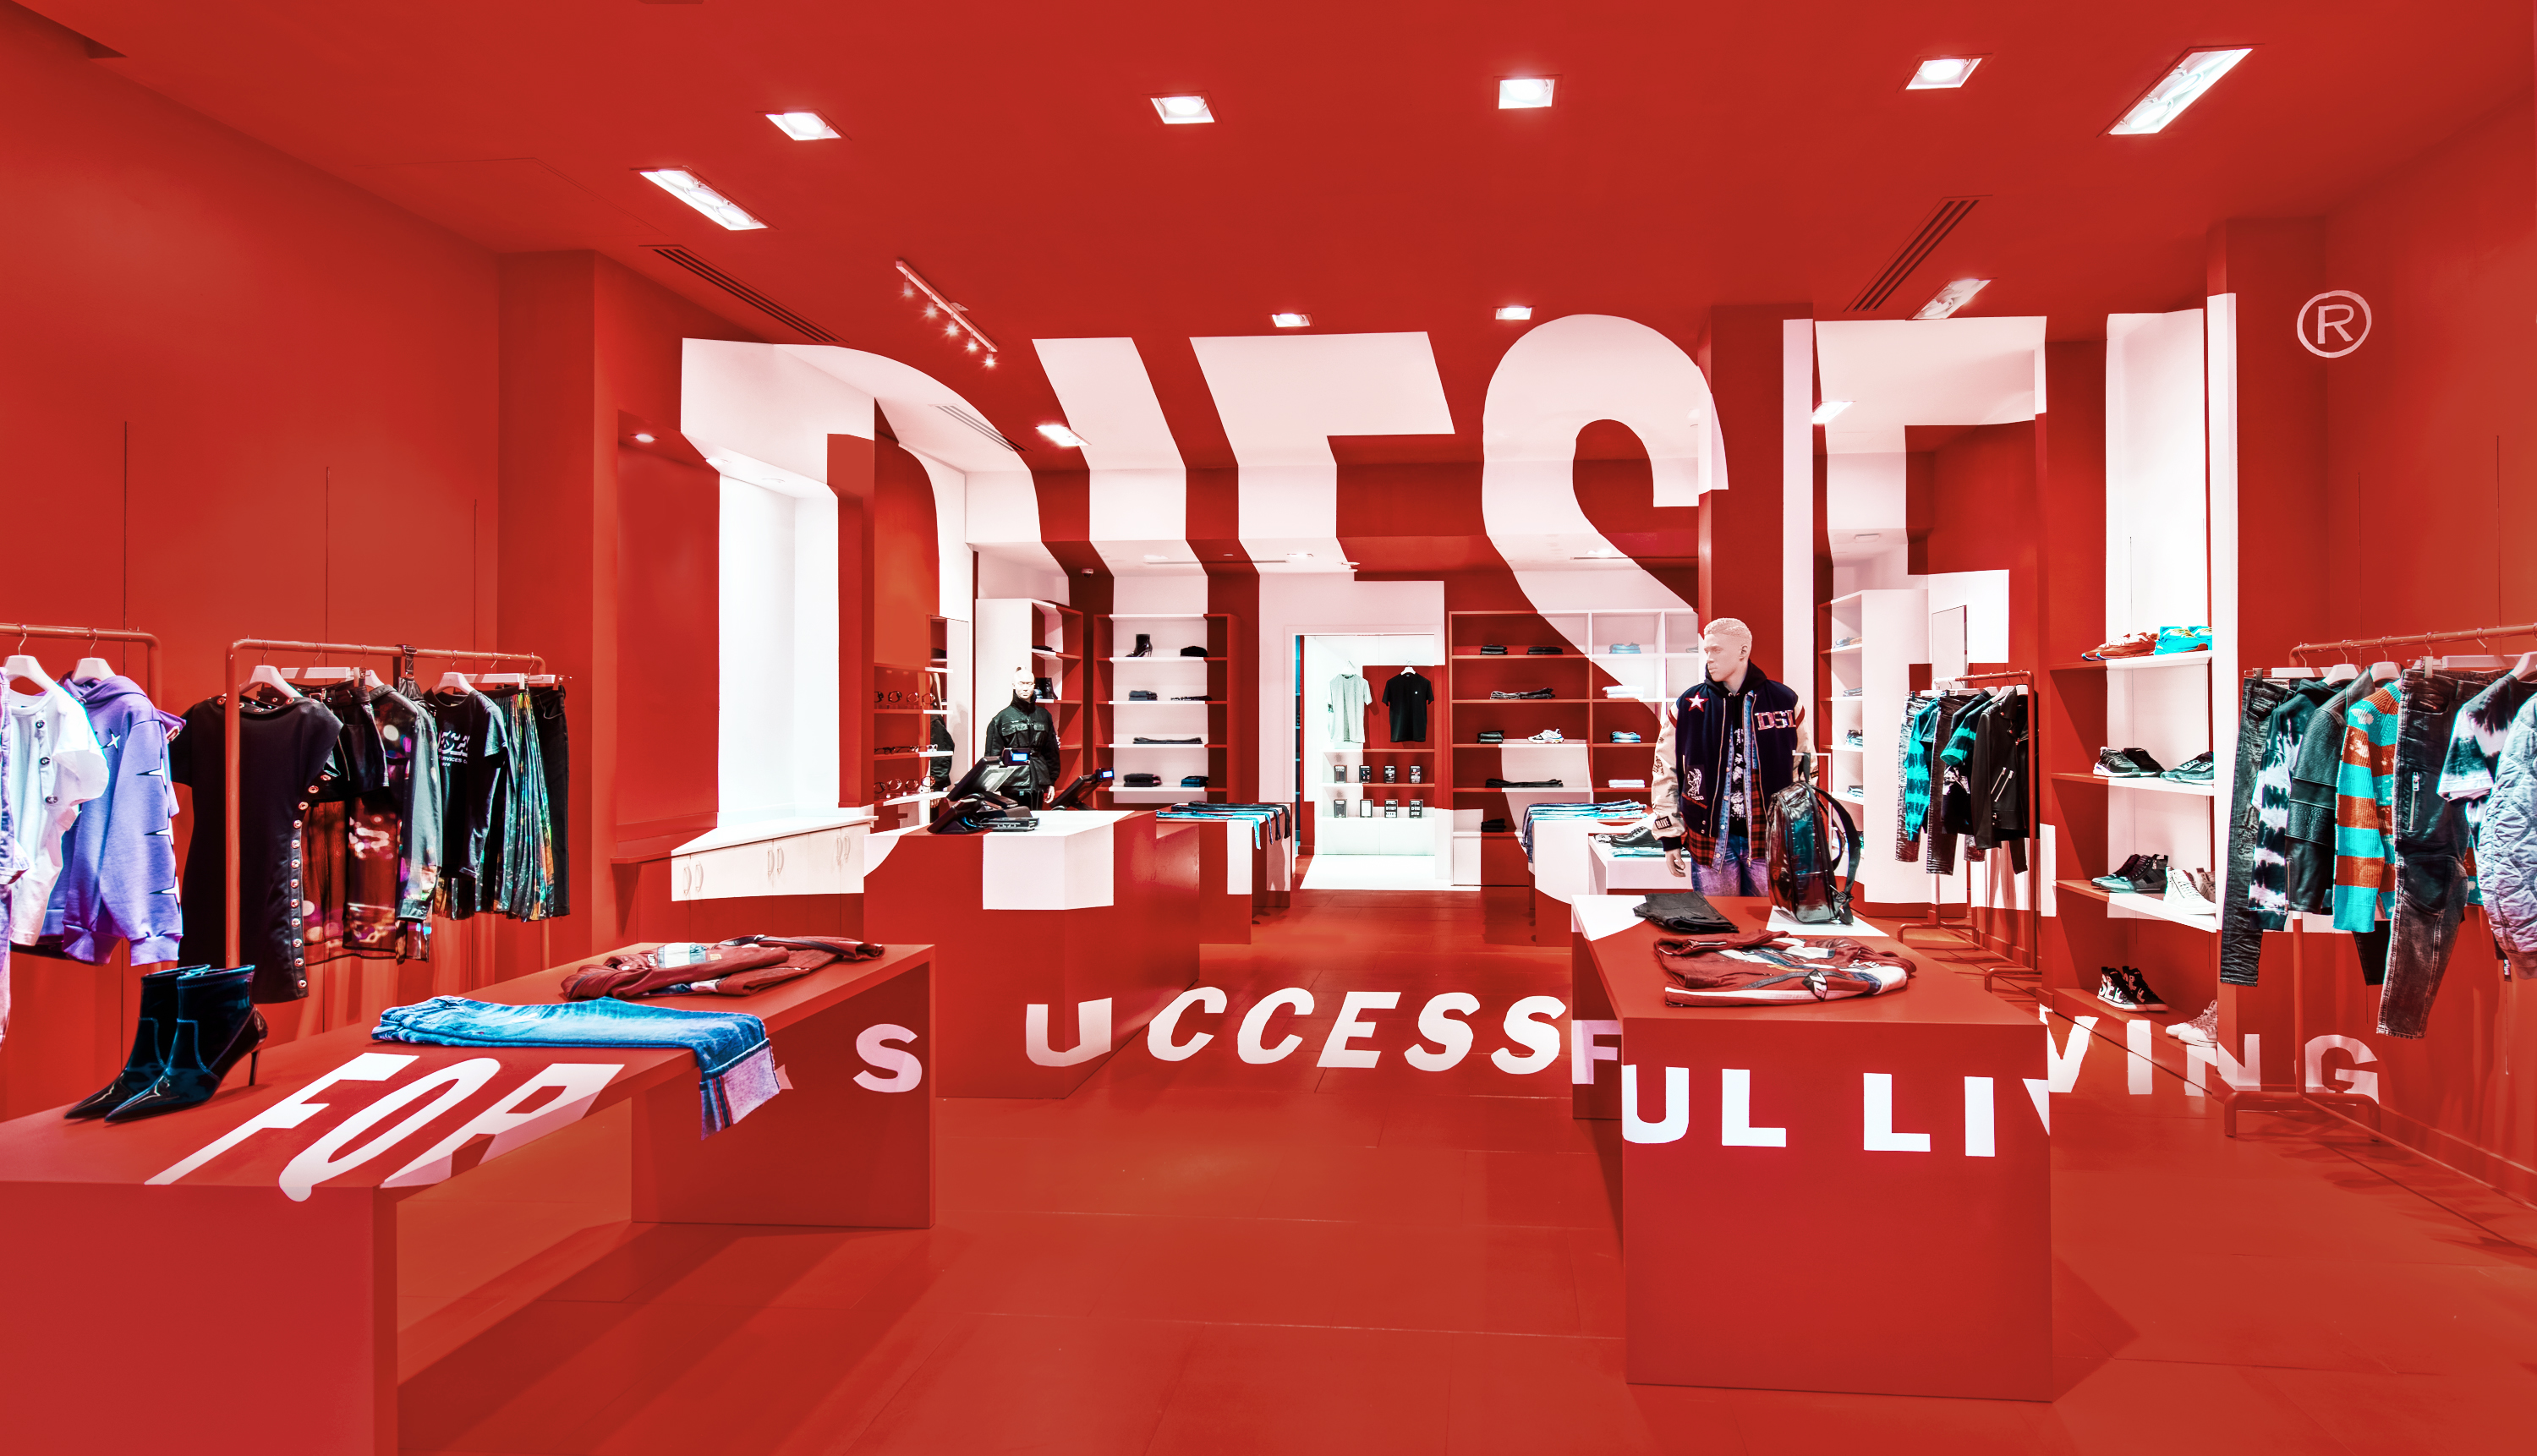 Inside the new Diesel's pop-up store concept conceived by Glenn Martens.